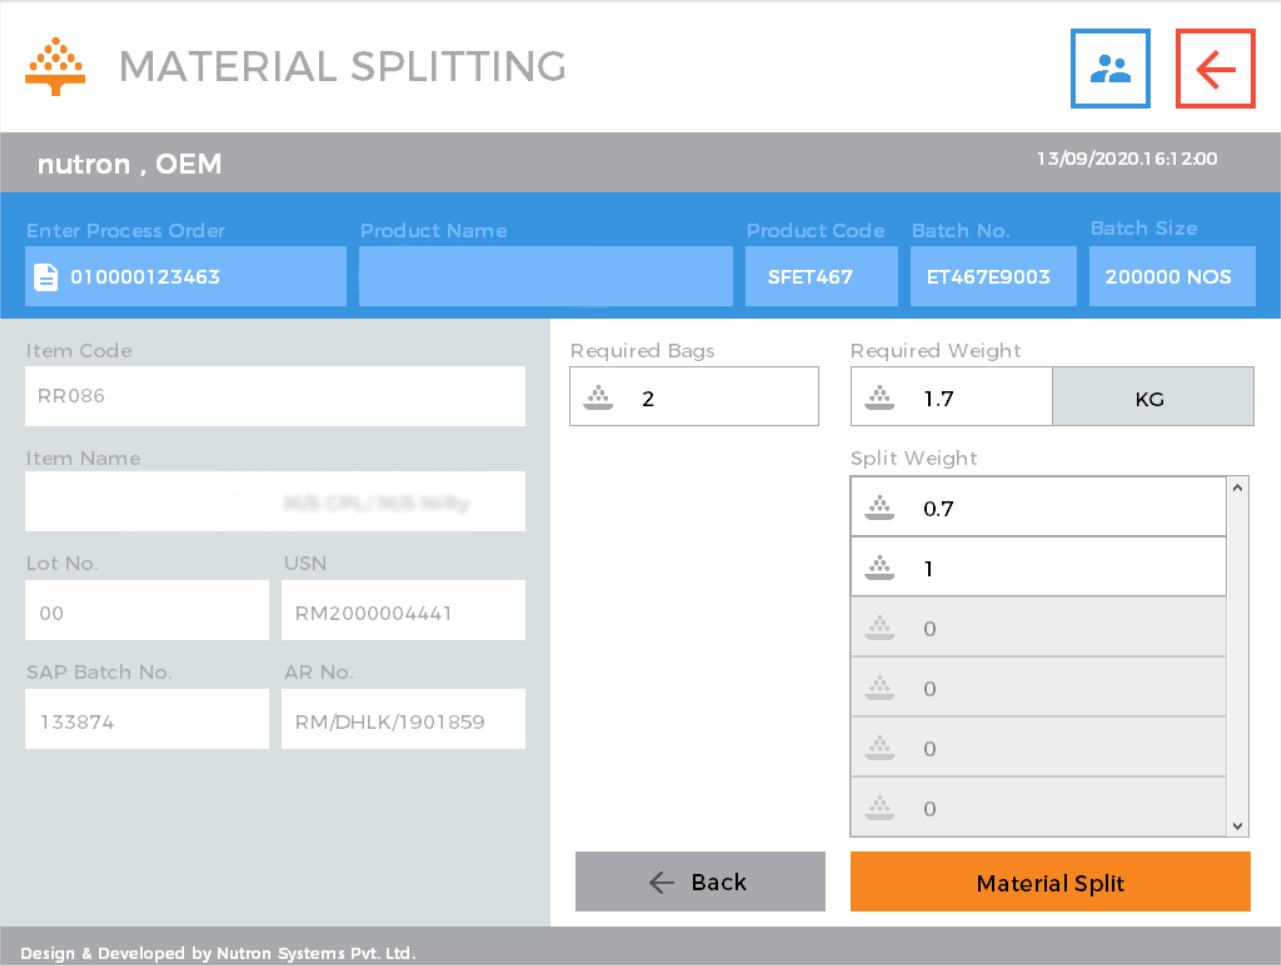 Weighing & Dispensing: Material Splitting